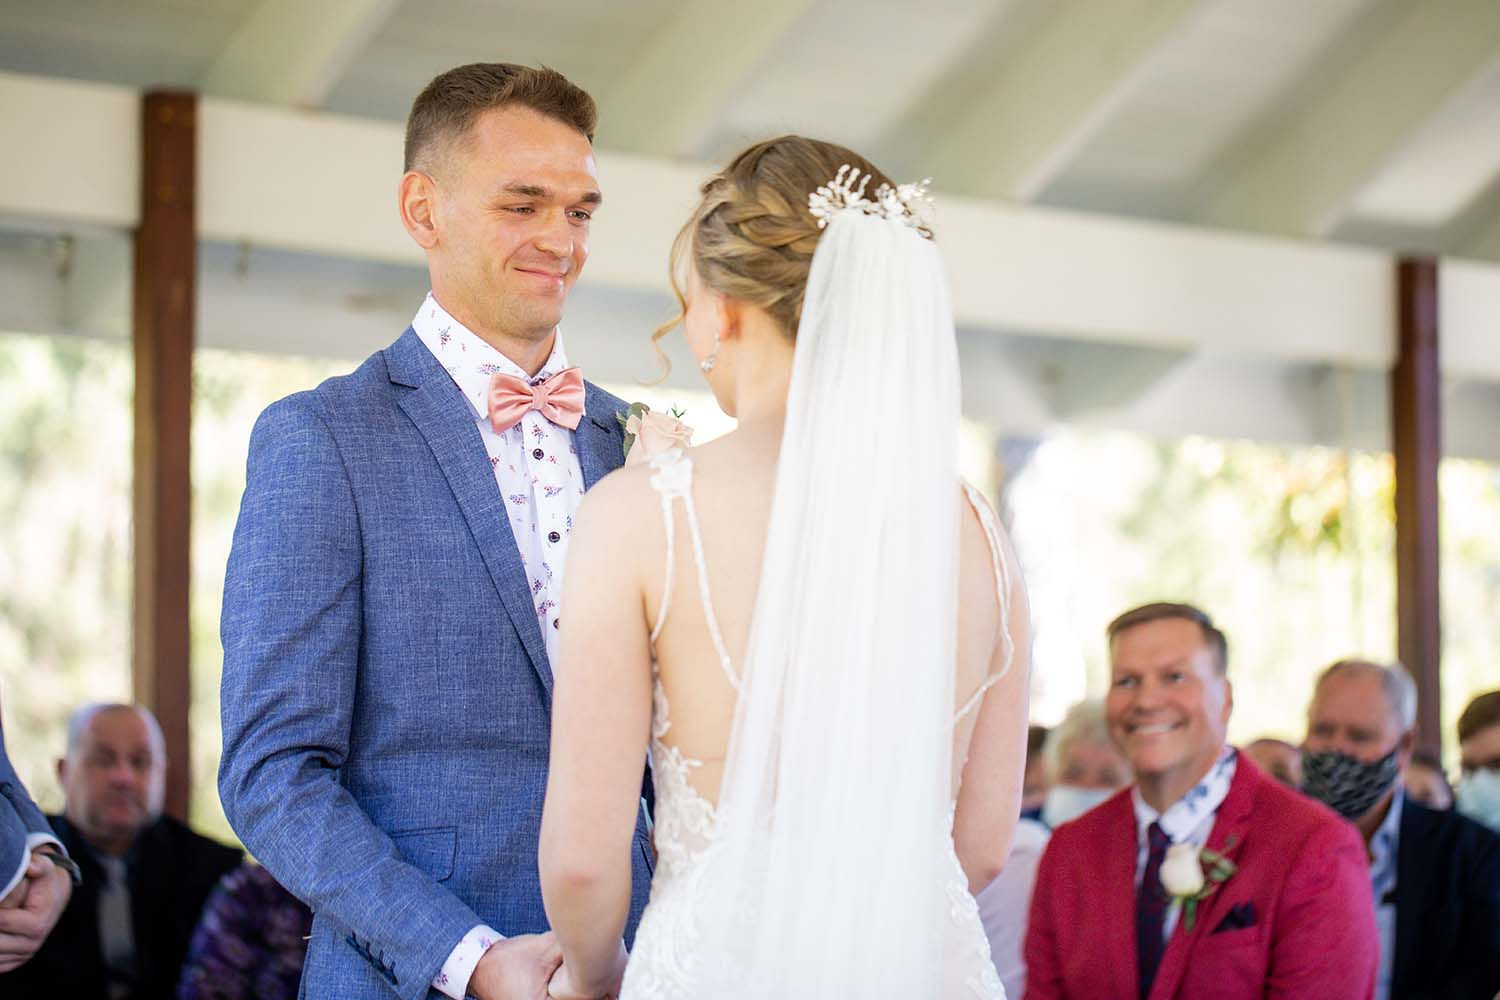 Wedding Photography - the vows